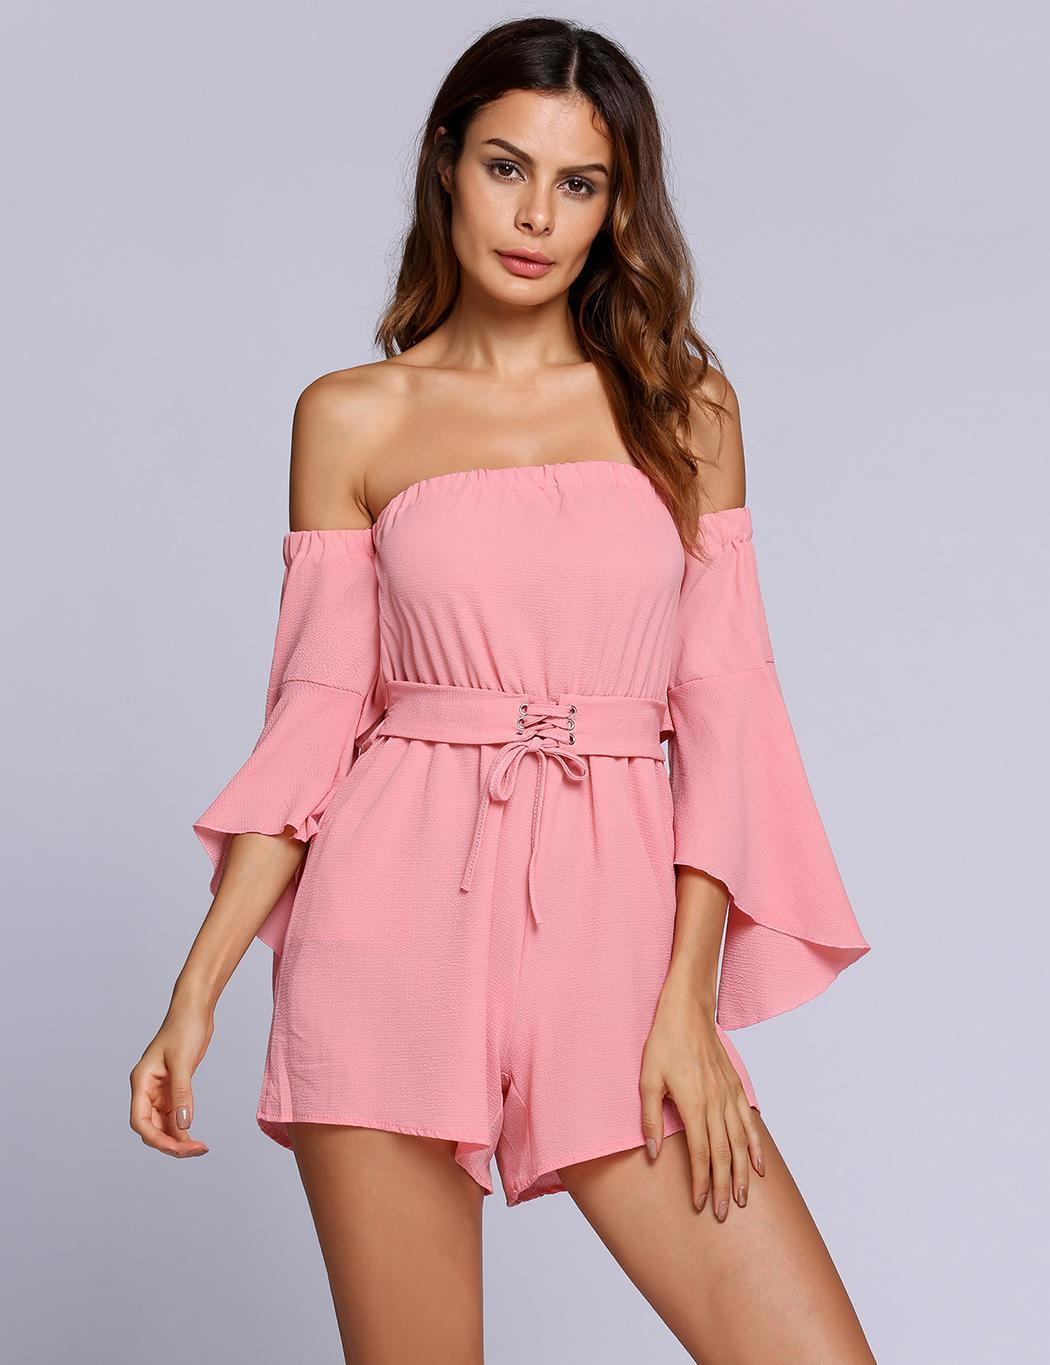 Fashion Off the Shoulder 3/4 Bell Sleeves Backless Solid Rompers Fashion Summer Rompers